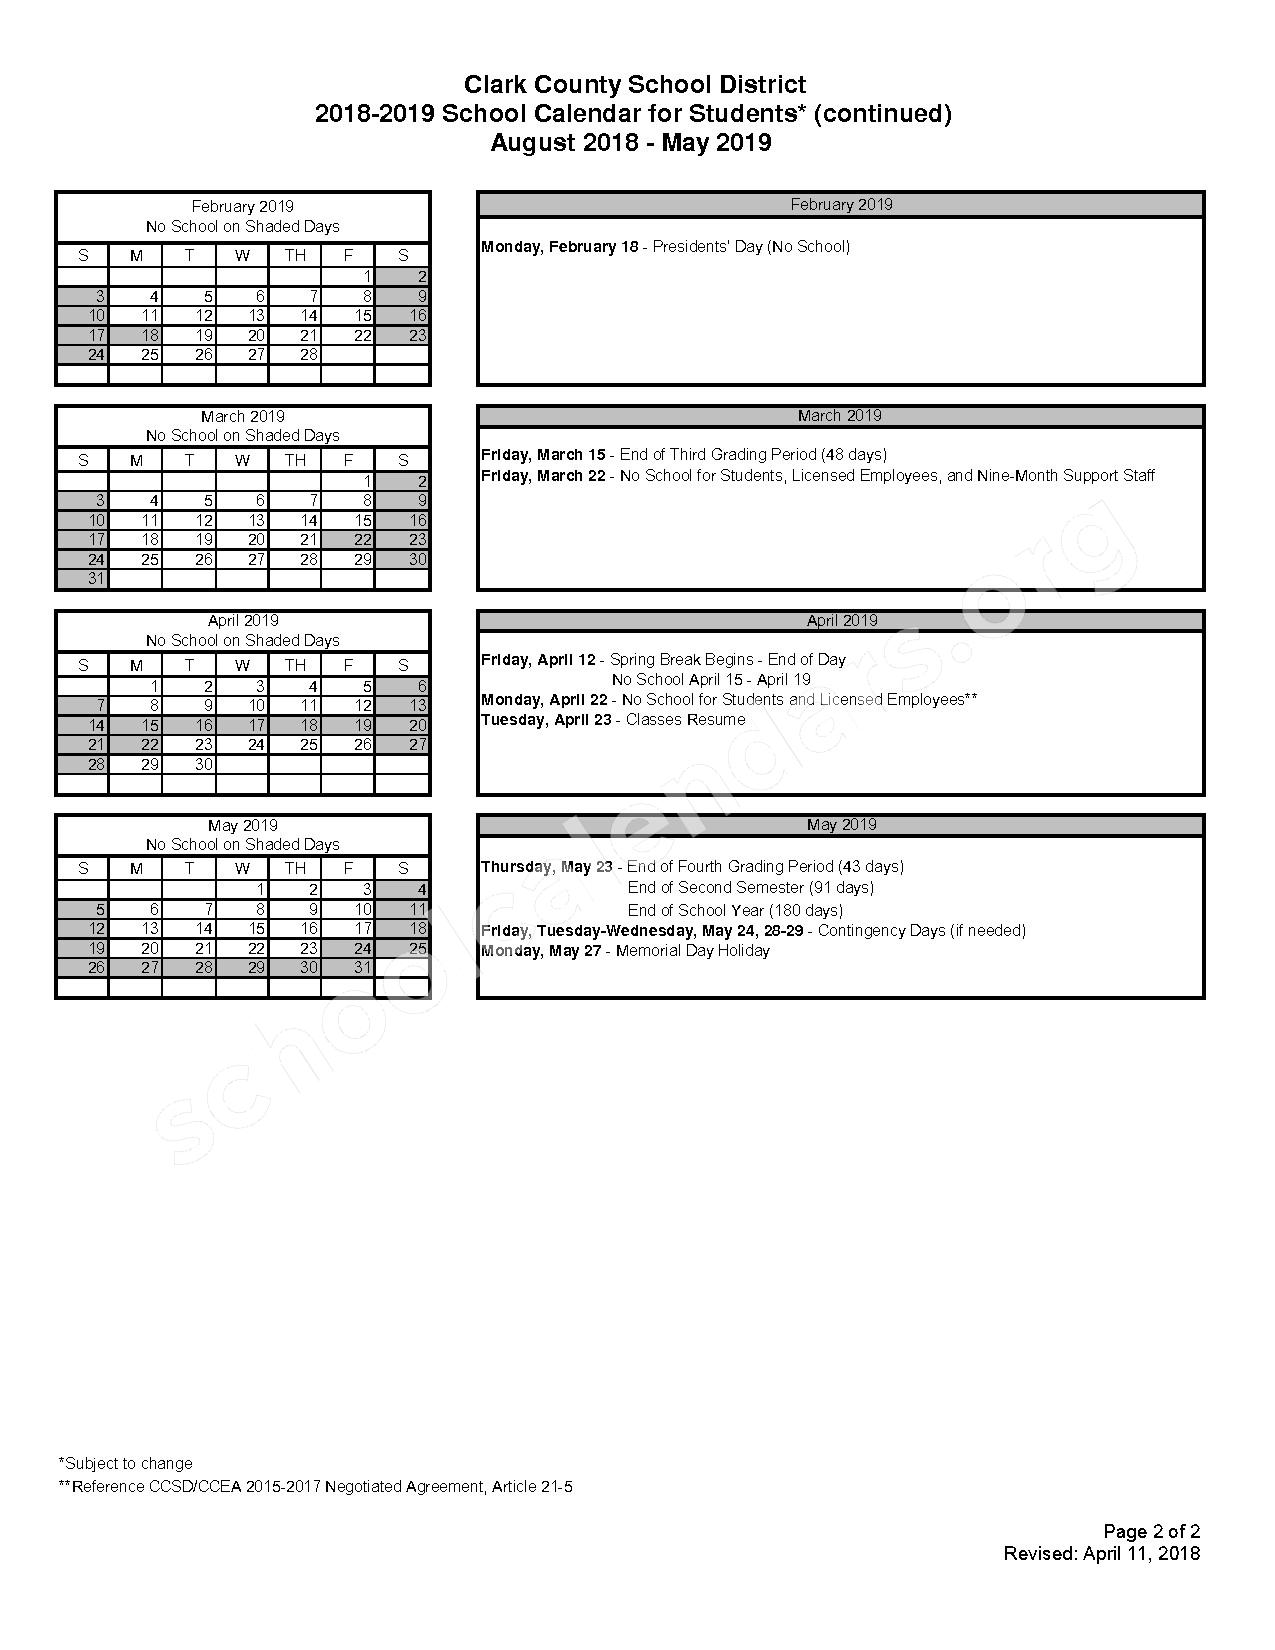 2018 - 2019 School Calendar for Students – Miley Achievement Center Elementary School – page 2